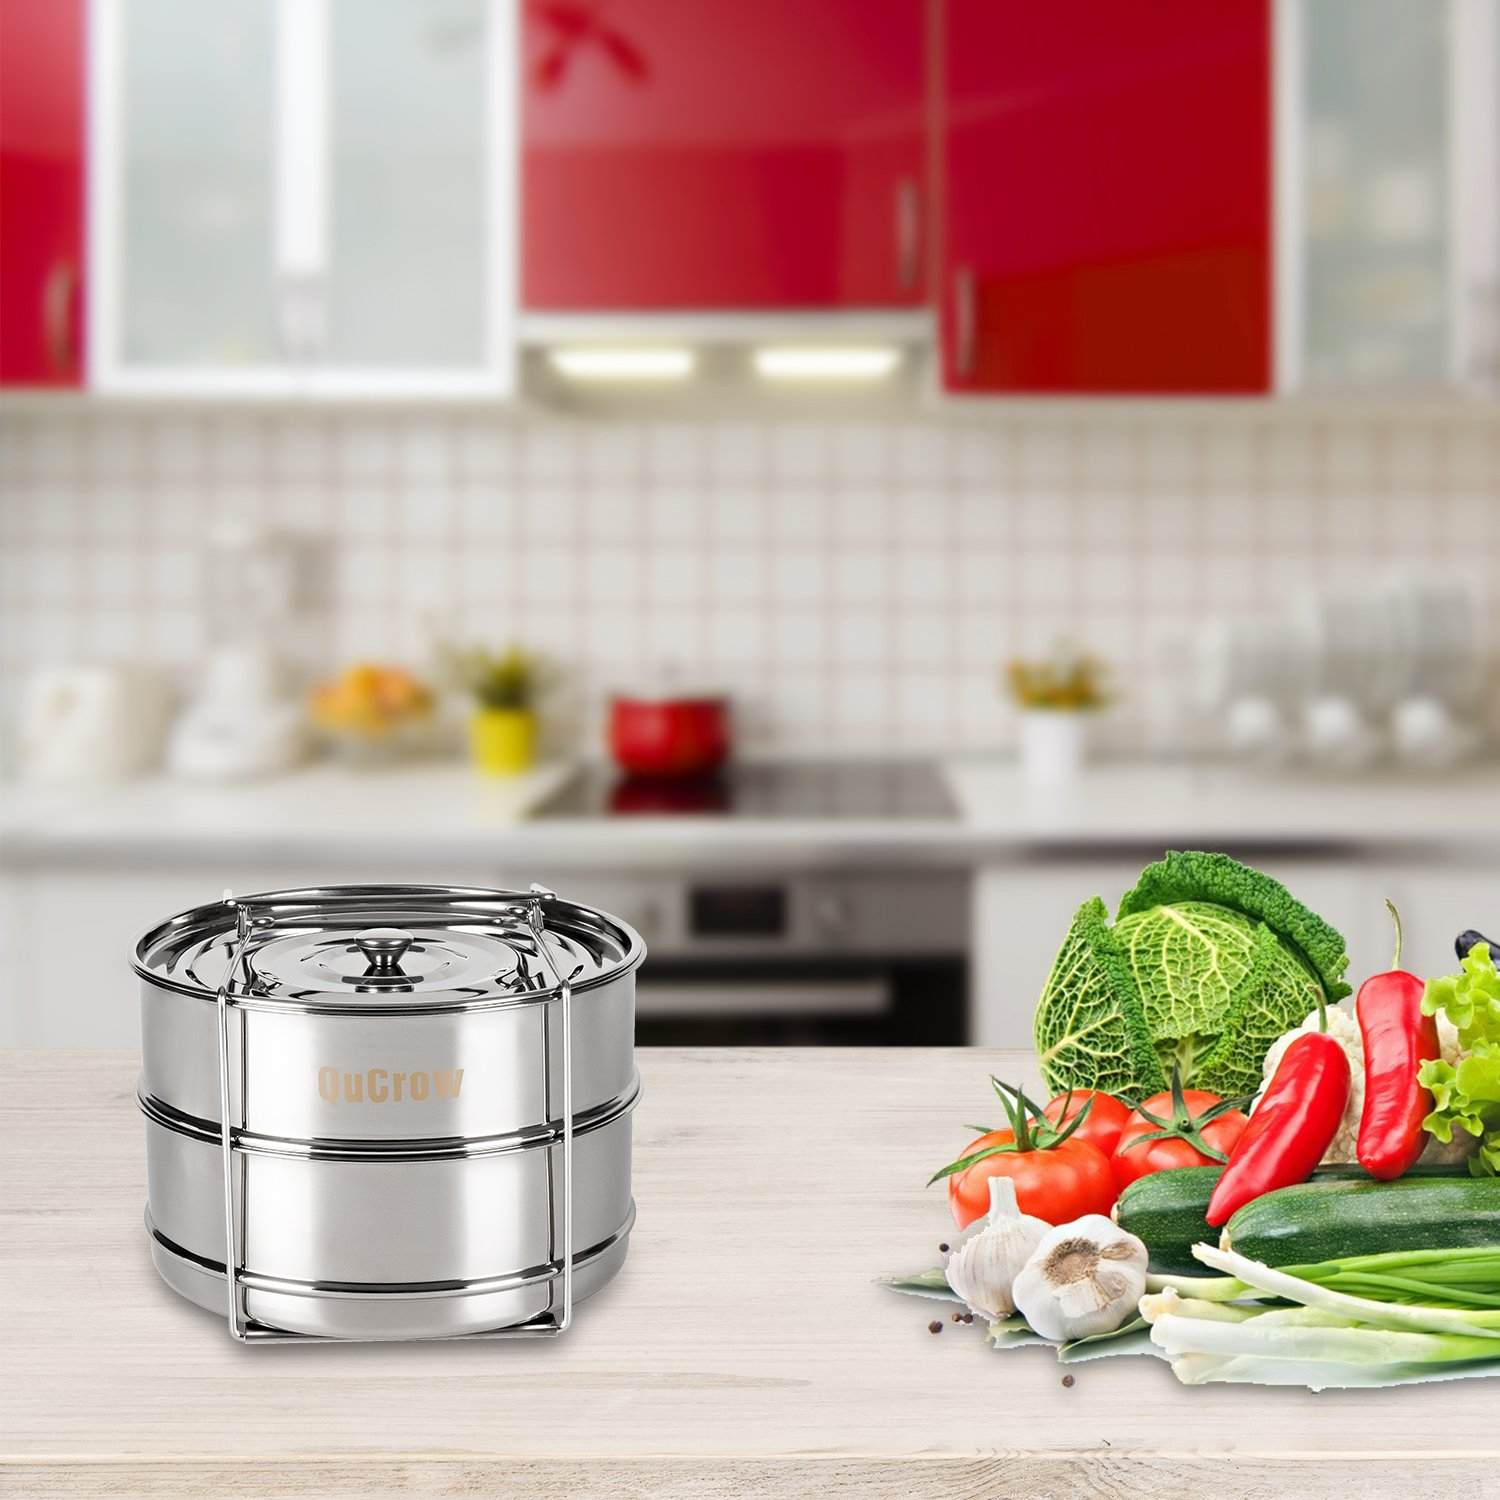 QuCrow Stackable Steamer Insert Pan with Sling - Stainless Steel Food Steamer for 6/8 Qt Pressure Cooker – Instant Pot Accessary by QuCrow (Image #6)